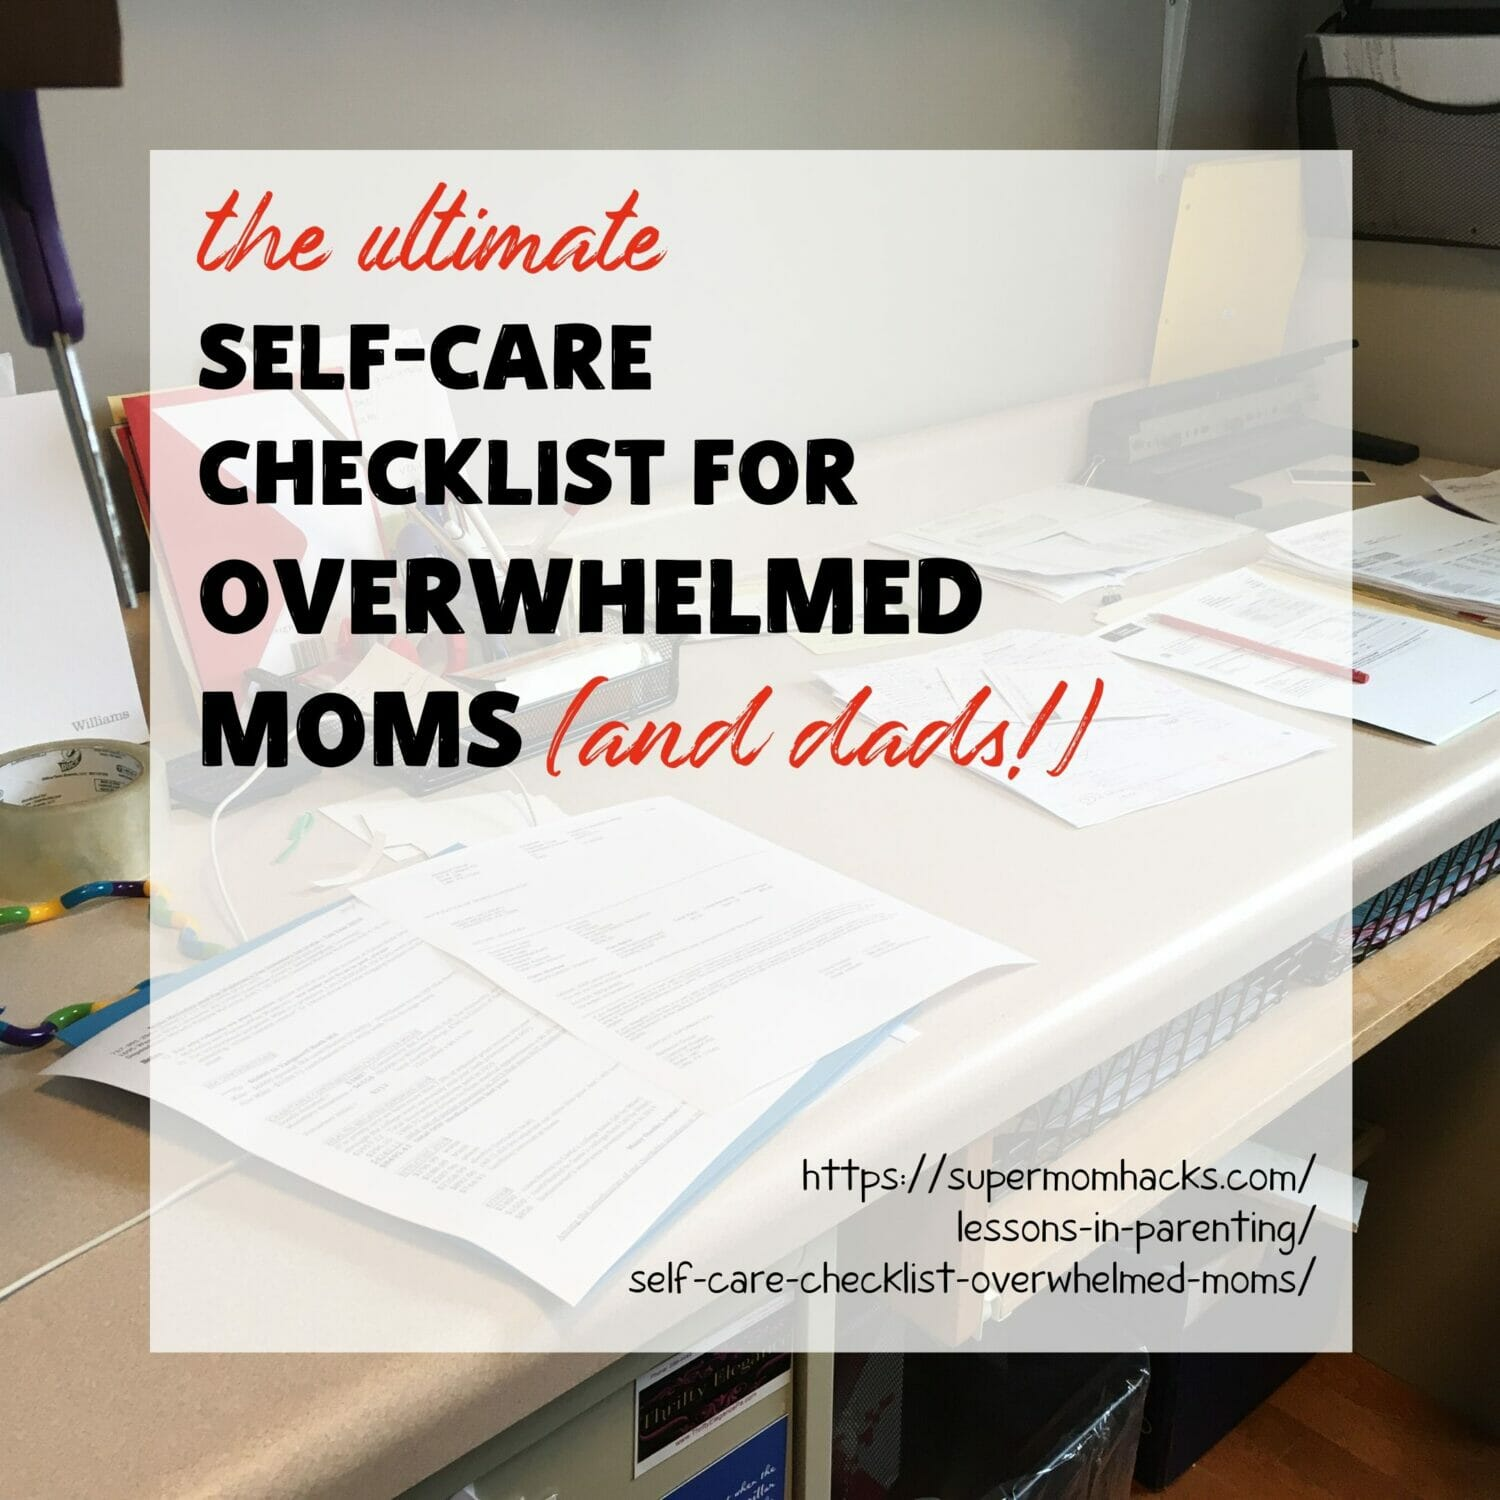 Are you an exhausted parent who's overwhelmed by to-do's? This self-care checklist for overwhelmed moms is the only self-care worksheet you need.